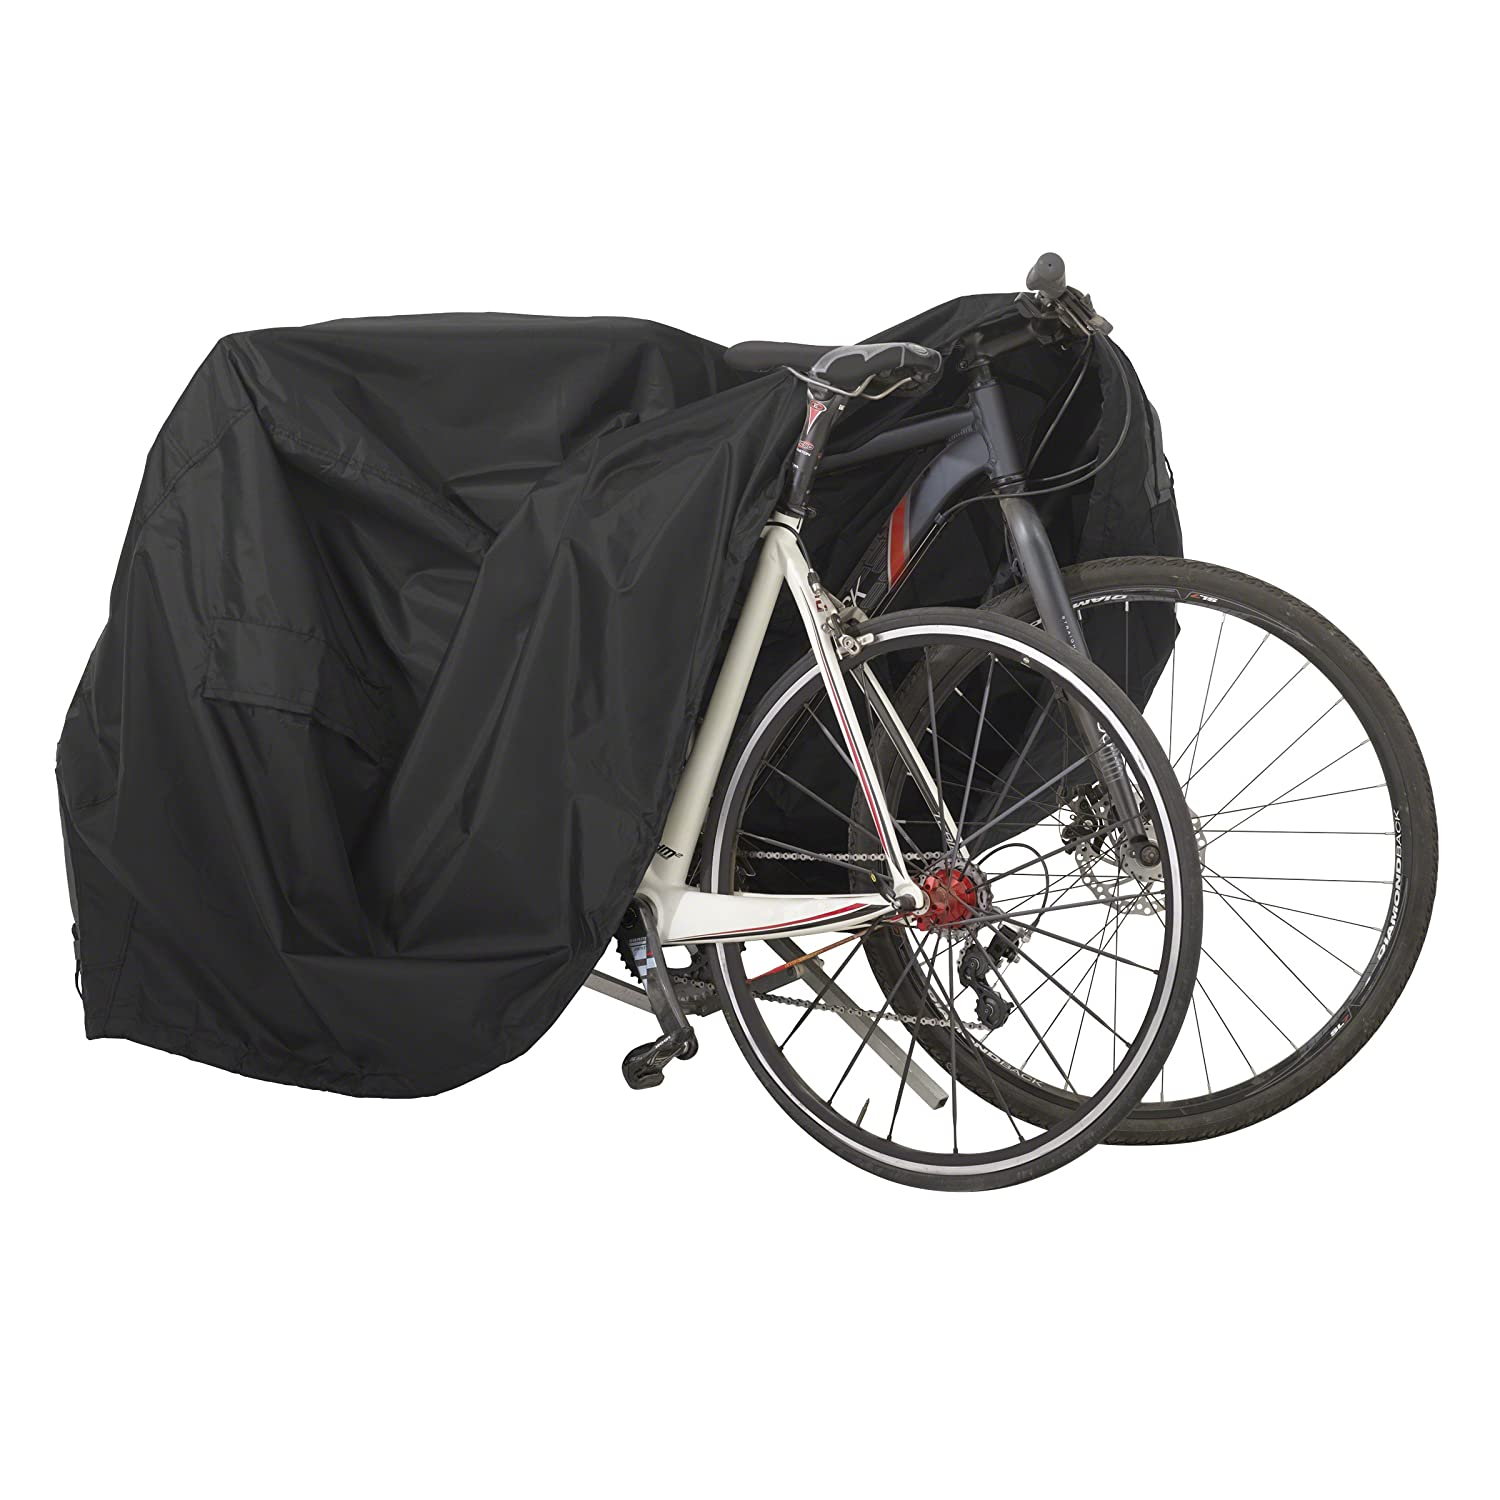 Classic Accessories Adjustable Bicycle Cover